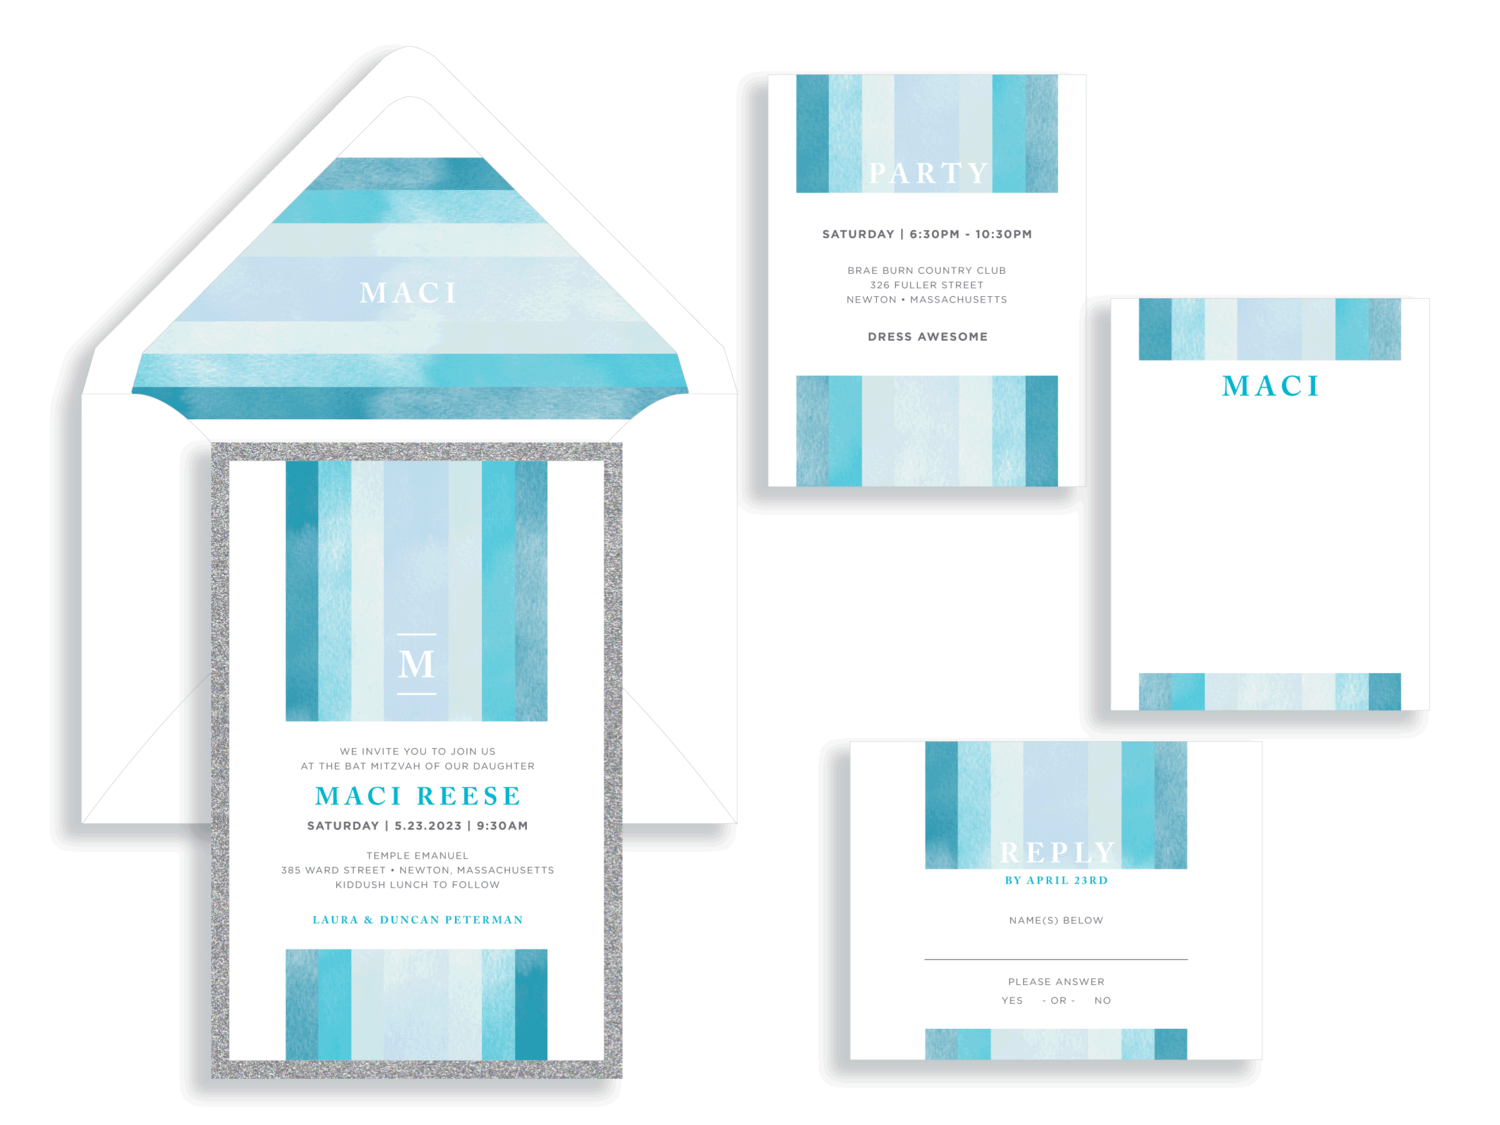 Maci aqua stripes and silver glitter bat mitzvah invitation in Fairfax Virginia from Staccato with personalized service, great selection!